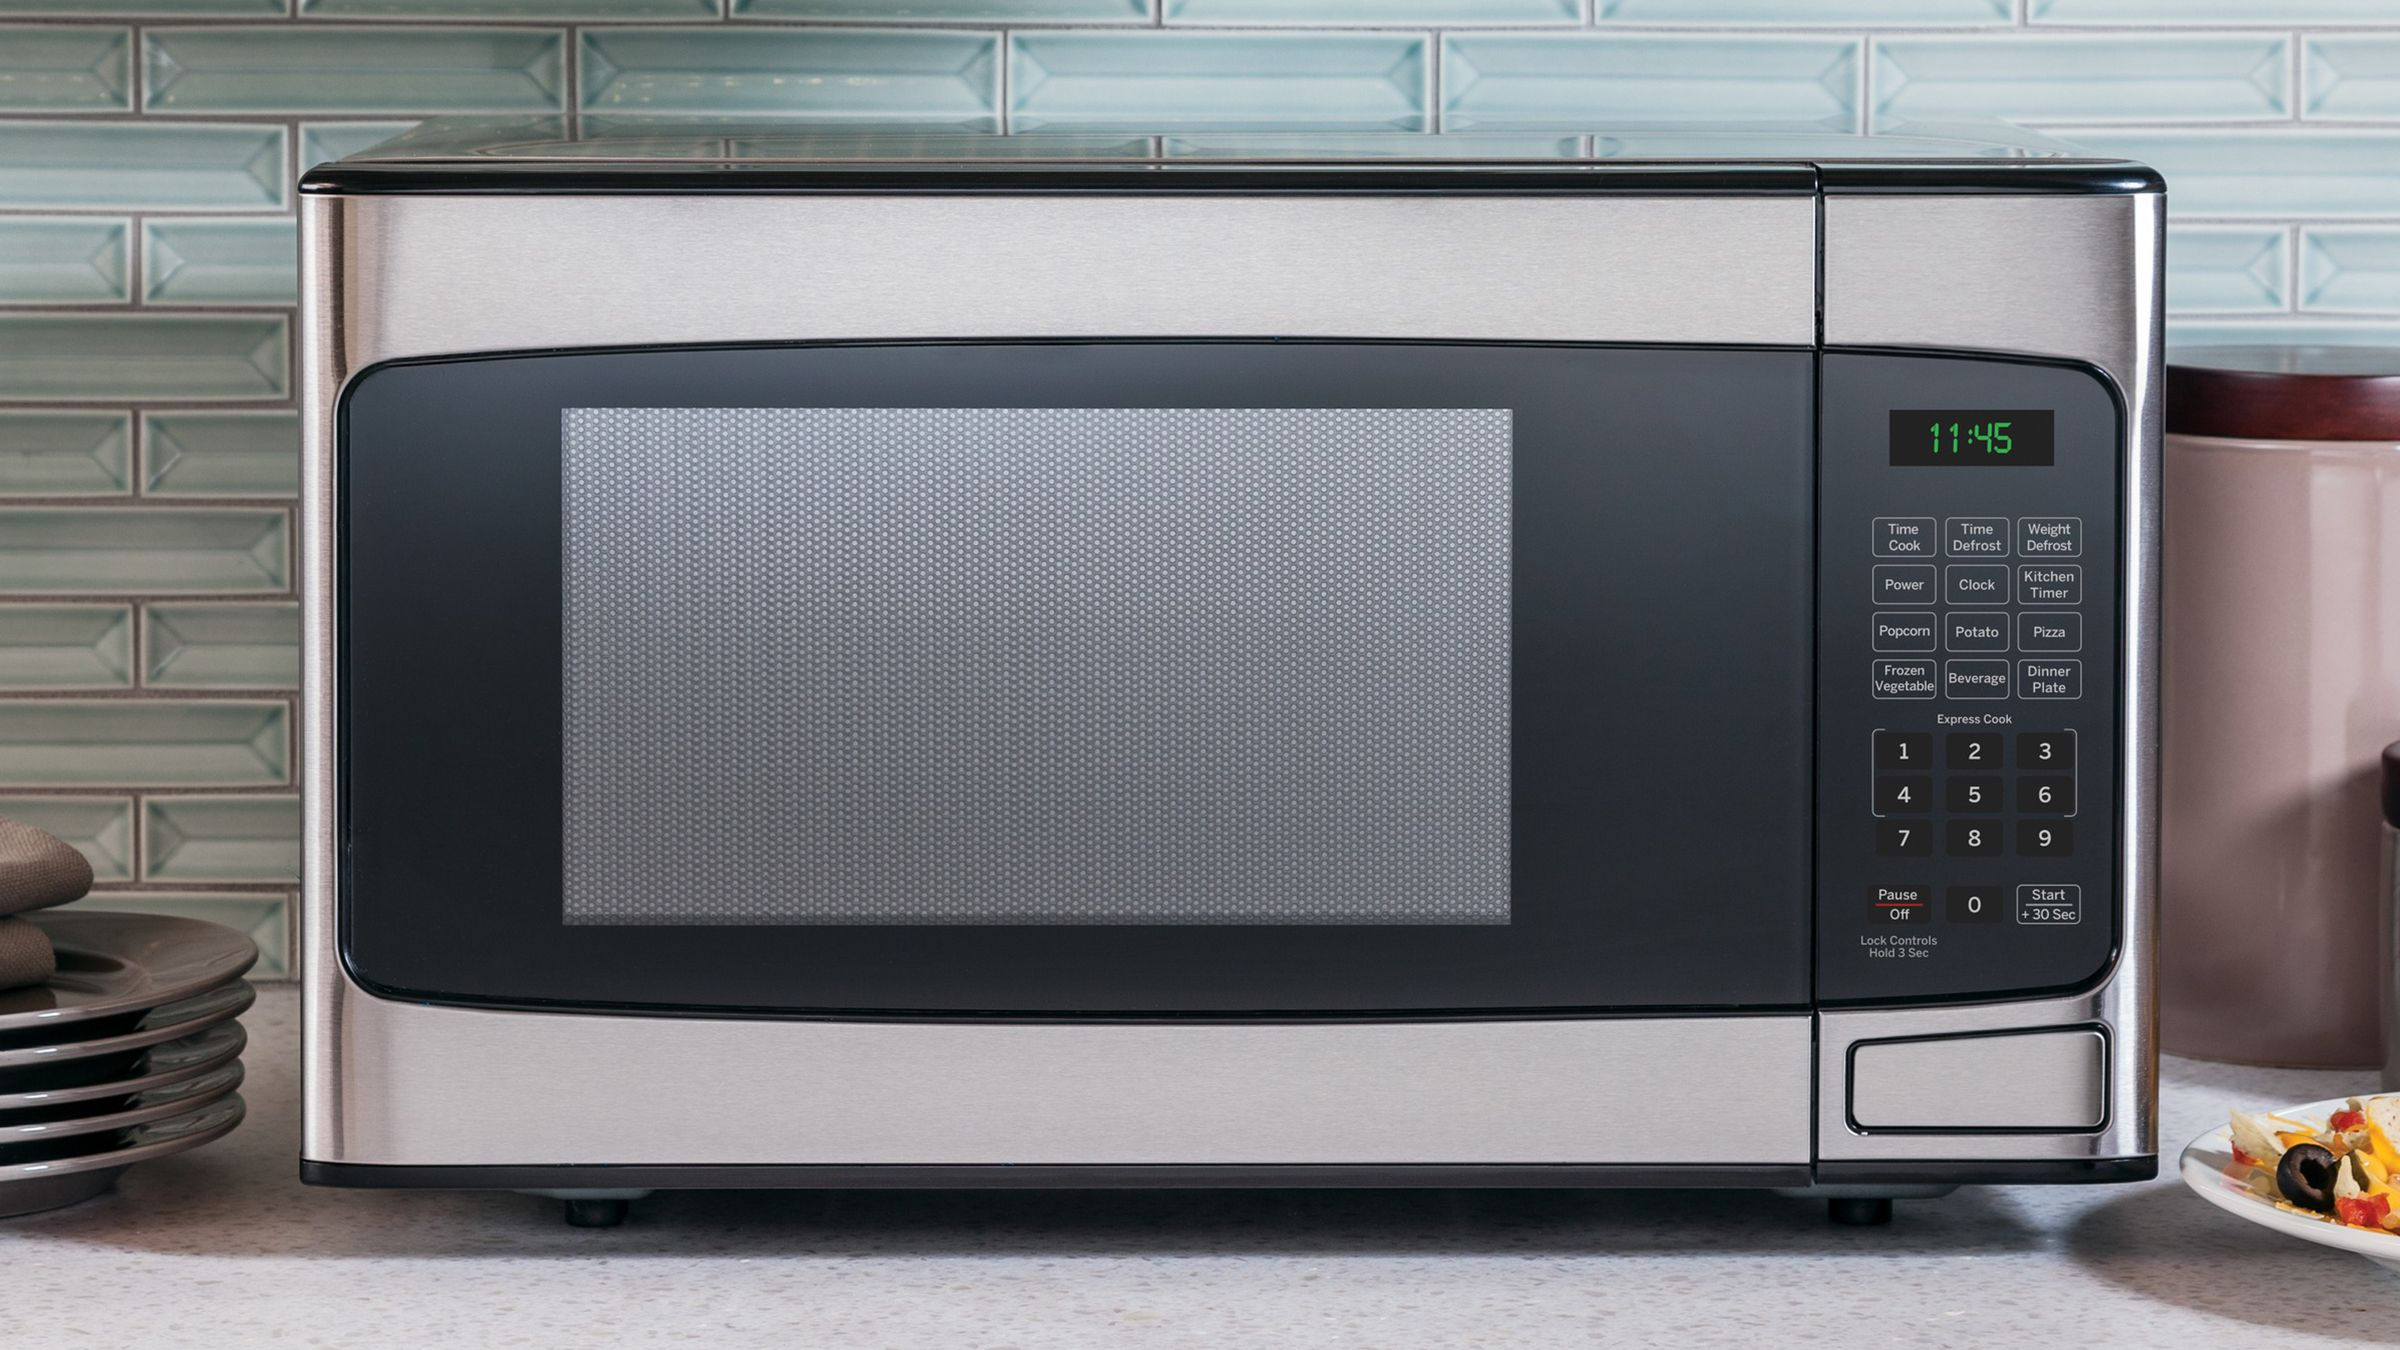 5 Best Microwaves To In 2019 Countertop Built Microwave Reviews